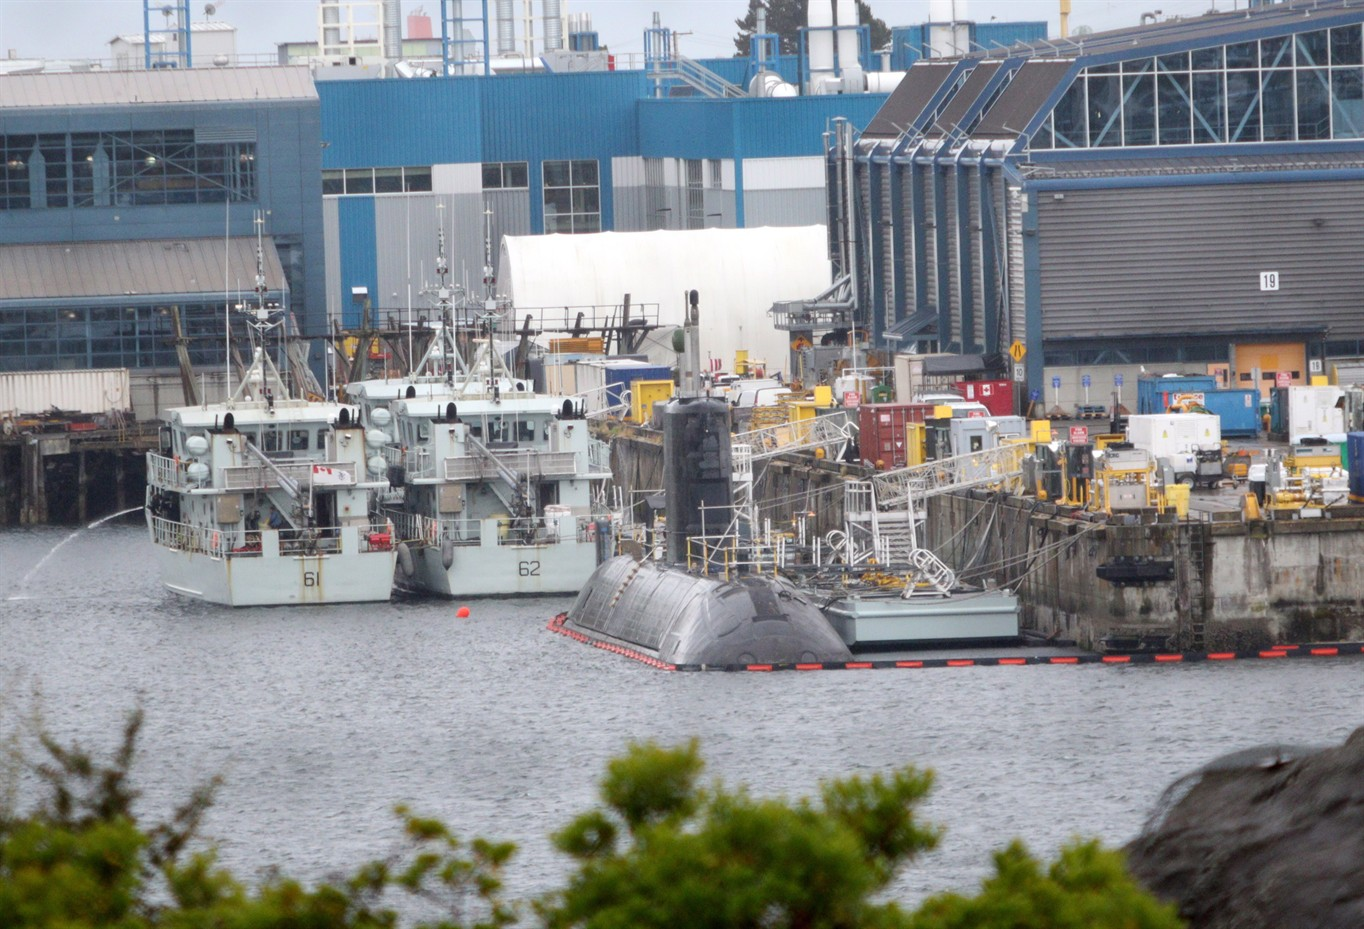 Submarine hit by naval vessel while docked in BC, minor damage reported